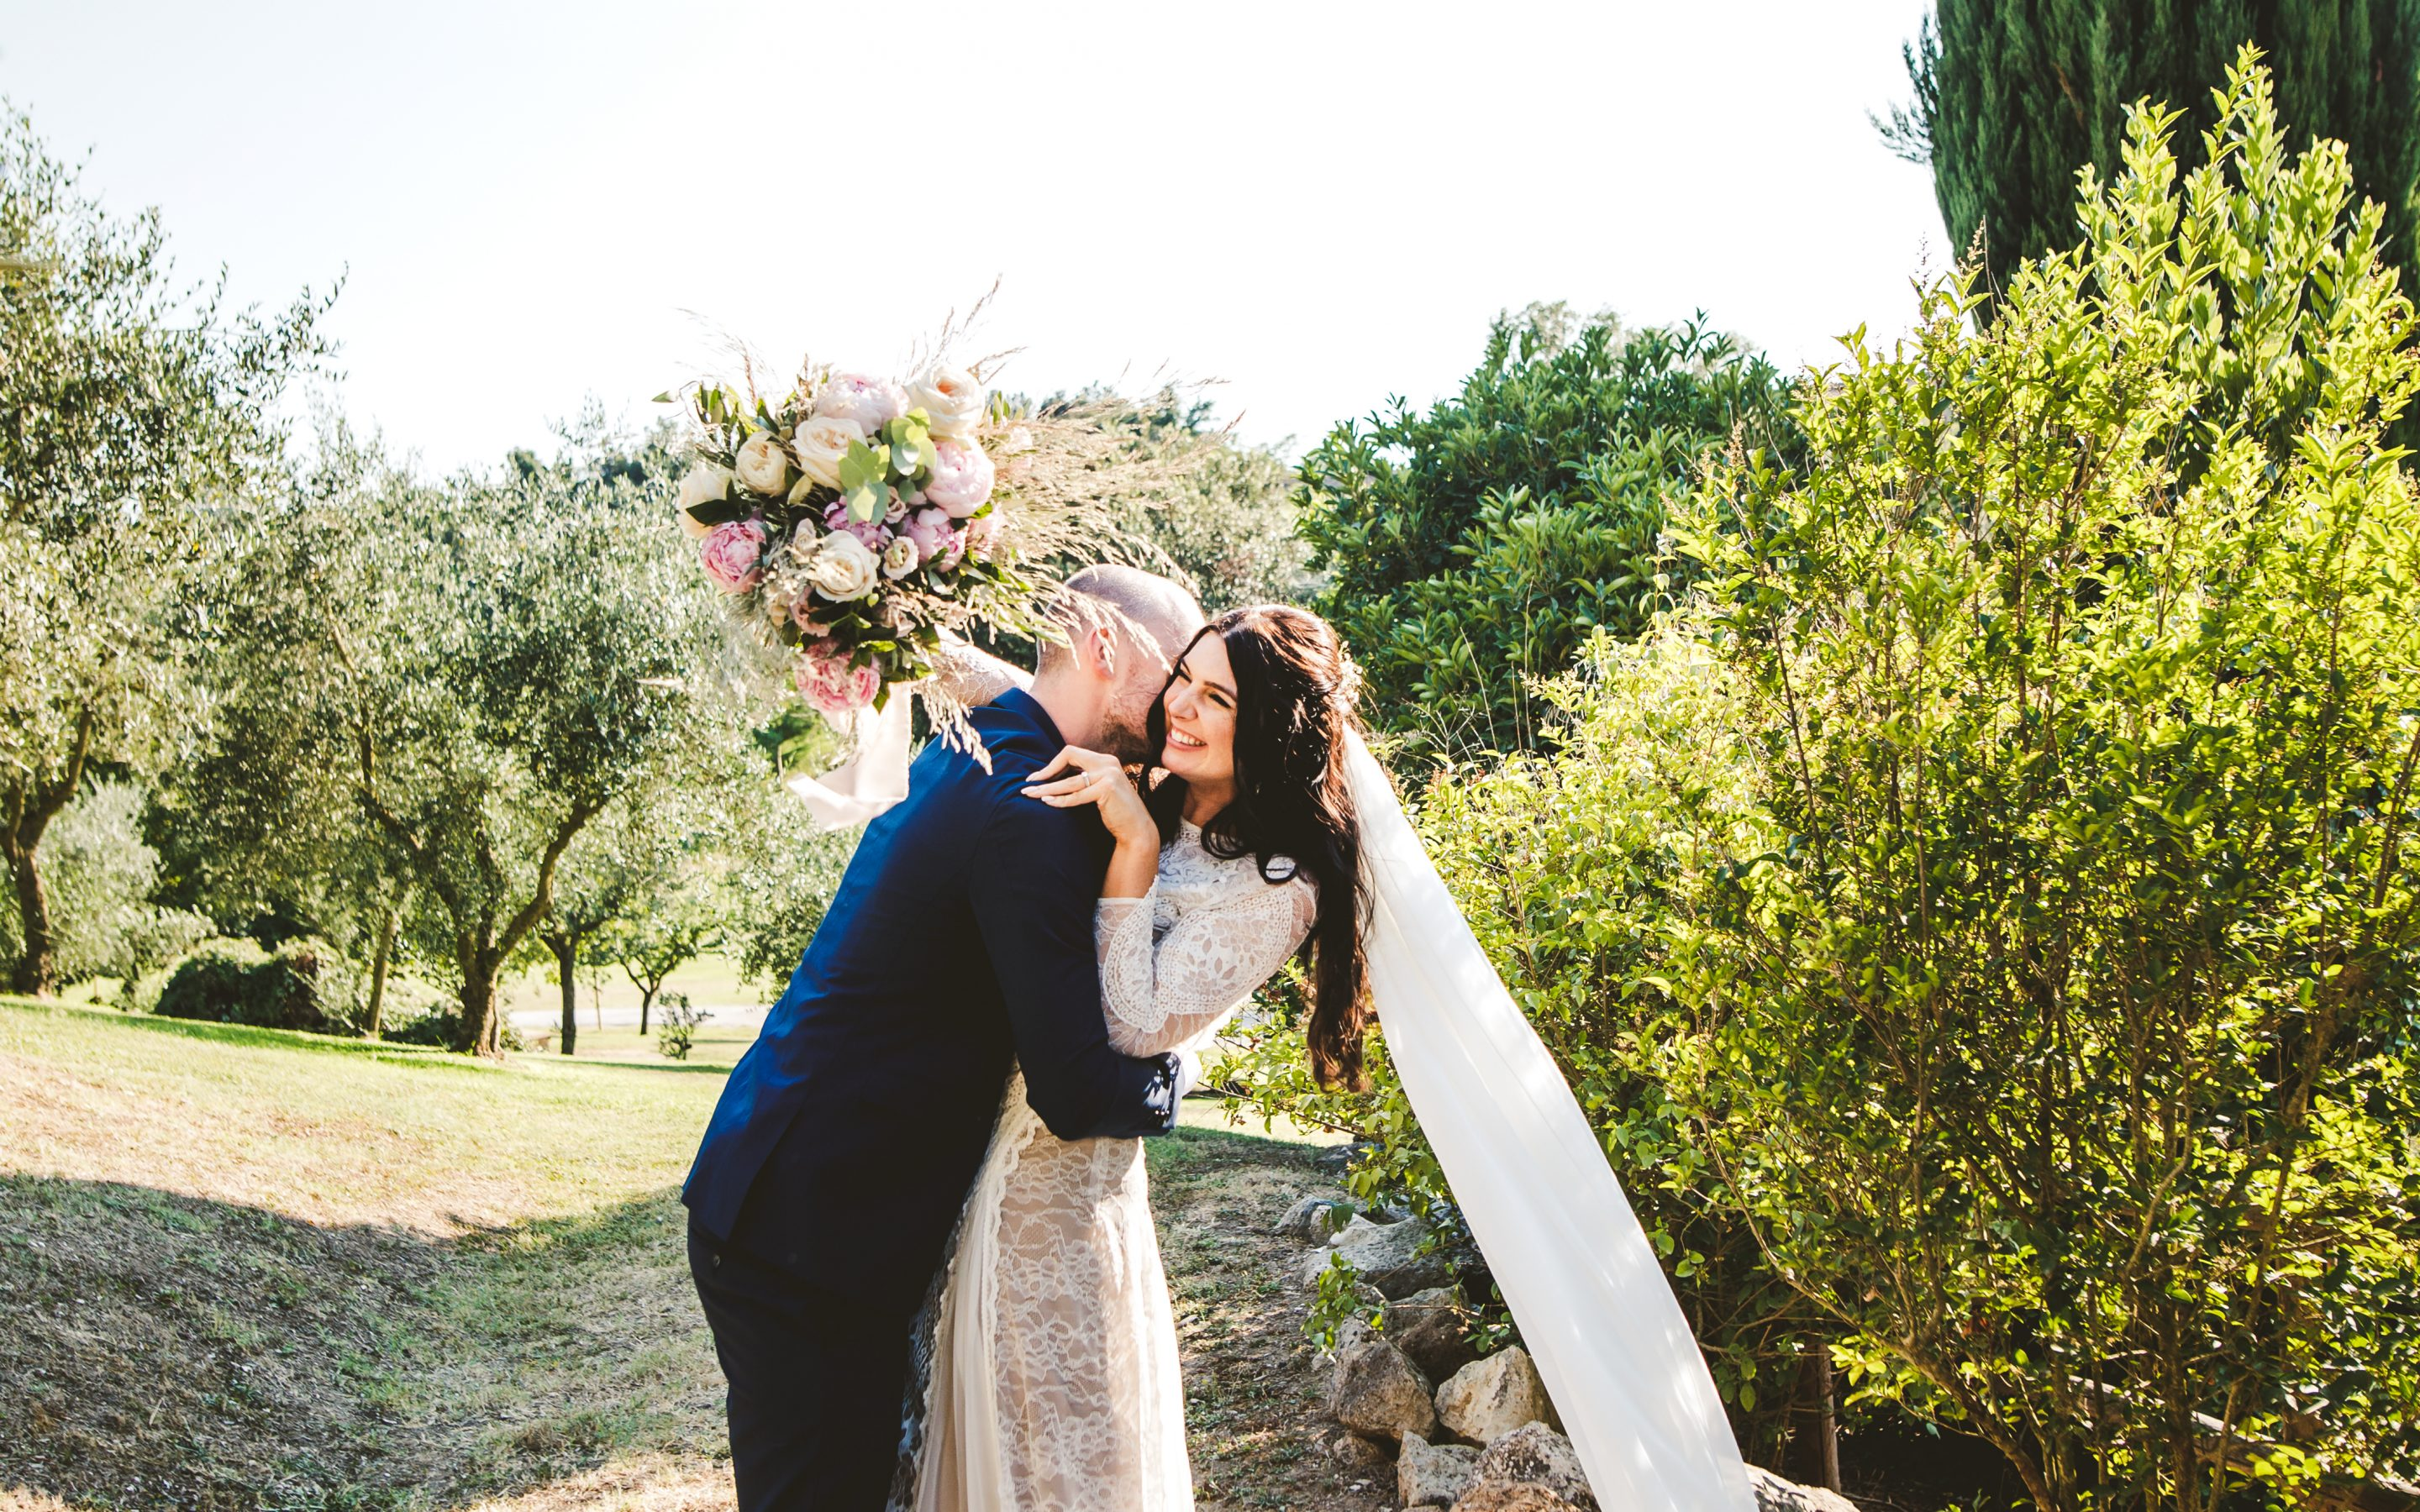 Boho chic wedding at Borgo di Tragliata